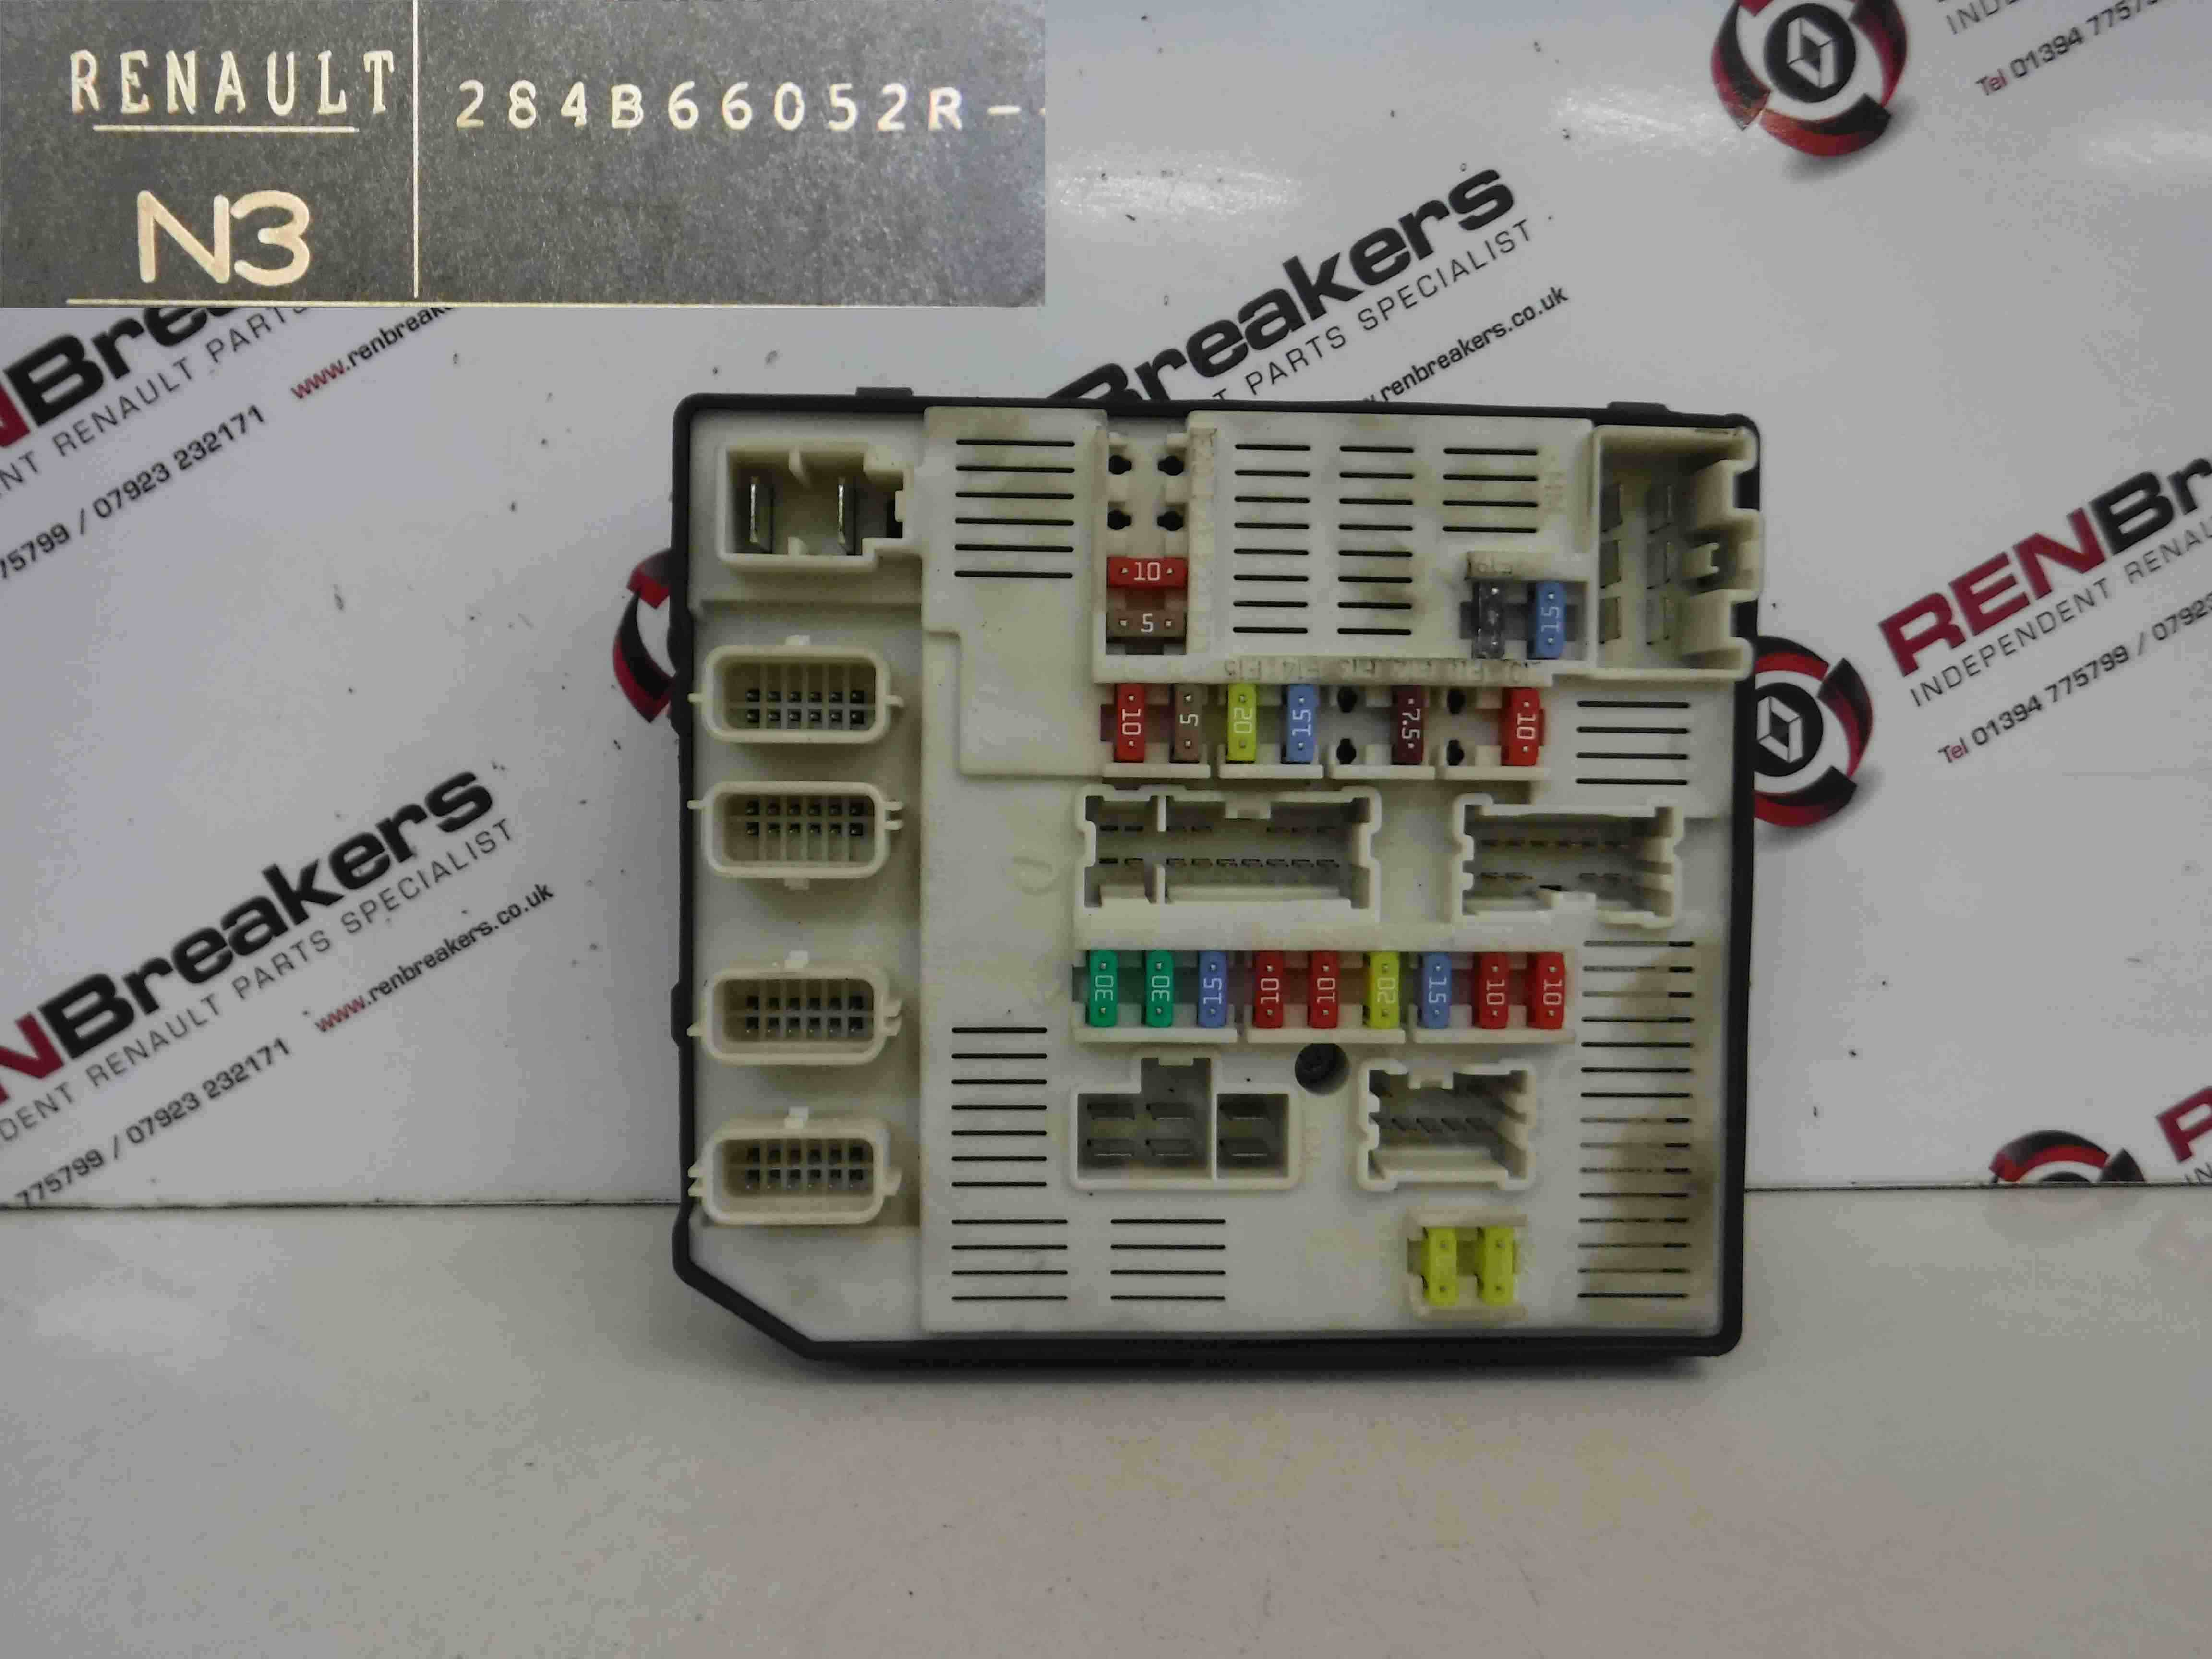 Fuse Box Renault Megane 2008 Smart Wiring Diagrams Diagram Mk3 2014 Engine Upc Computer 2